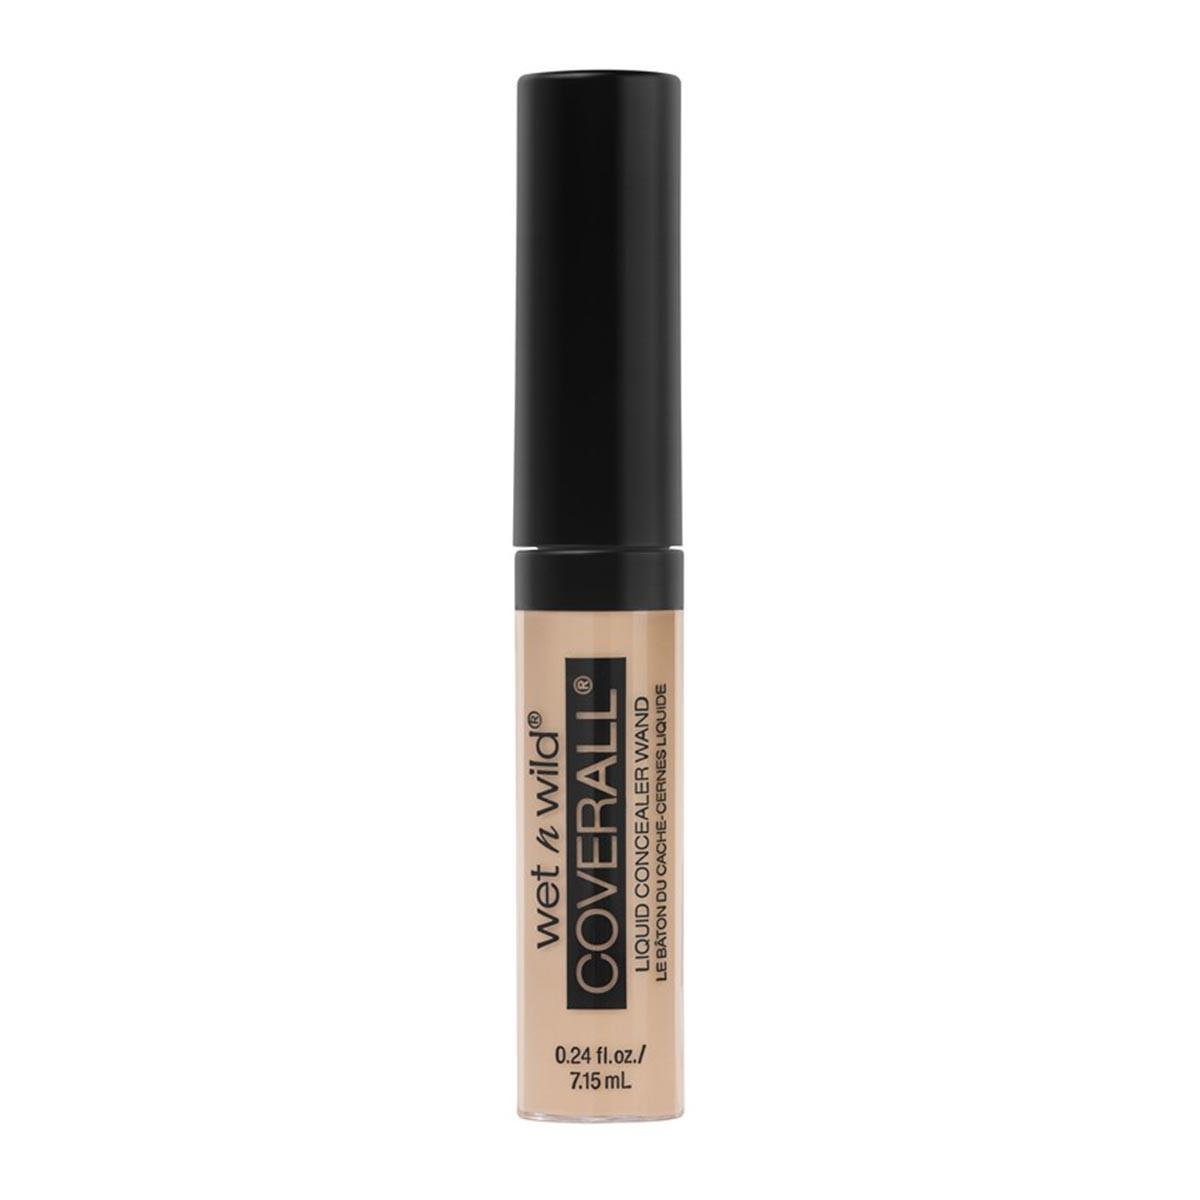 Wet n wild fragrances Coverall Liquid Concealer Wand Light